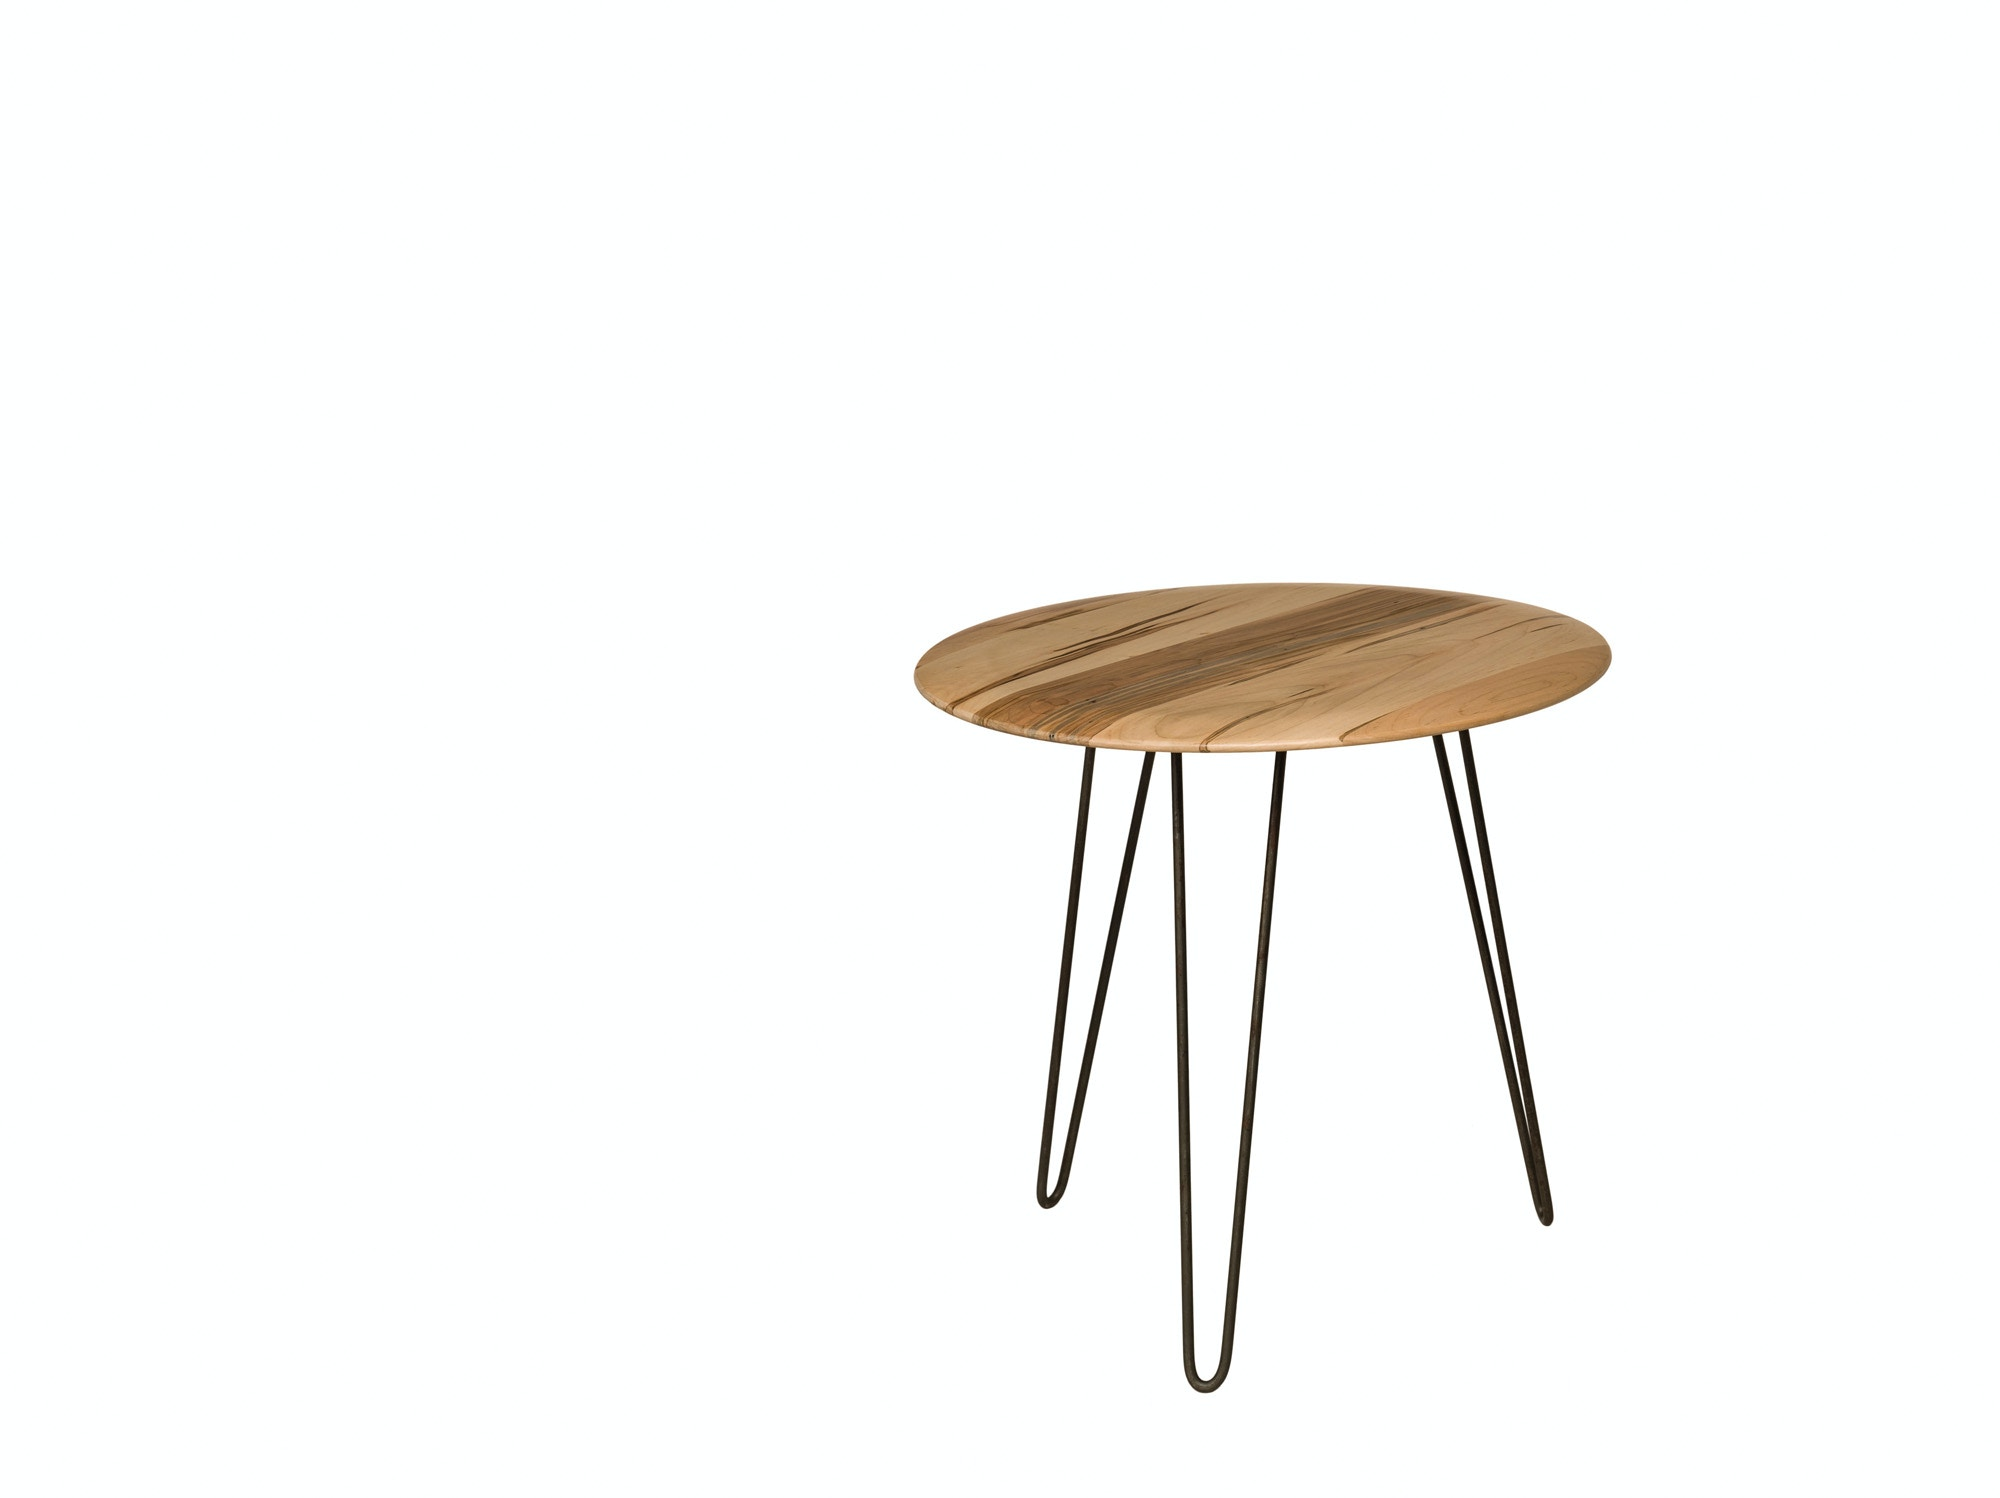 Barkman Living Room Wormy Maple Round End Table Hairpin Legs 5020 0101ET At High  Country Furniture U0026 Design